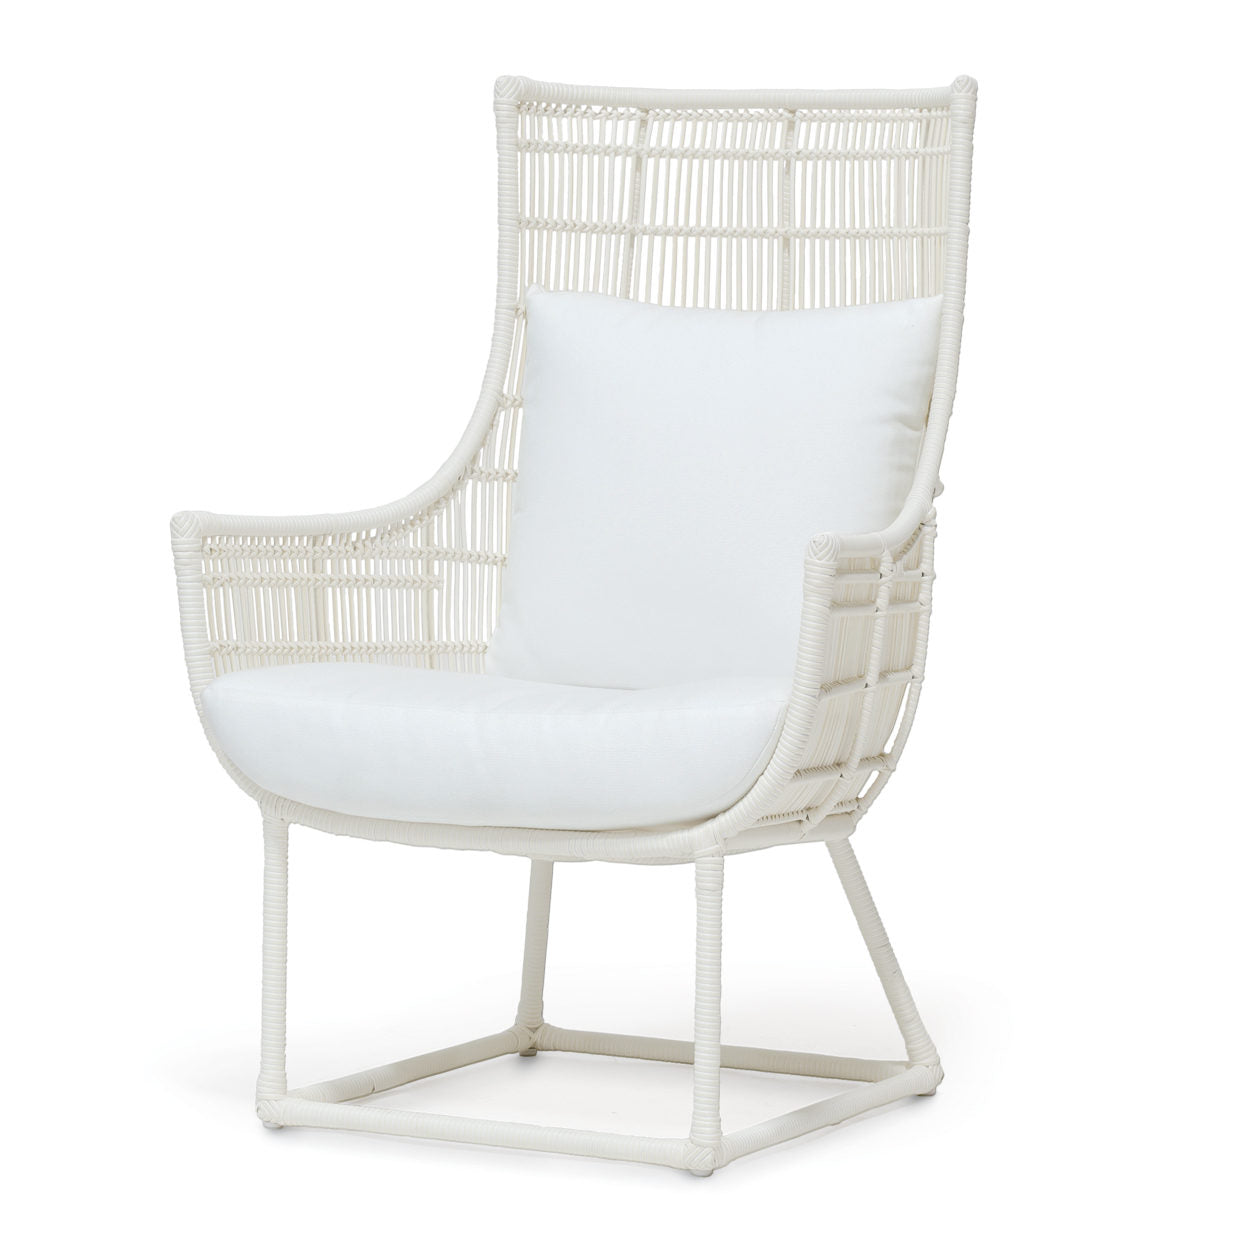 Outdoor Lounge Chair - Verona Cream